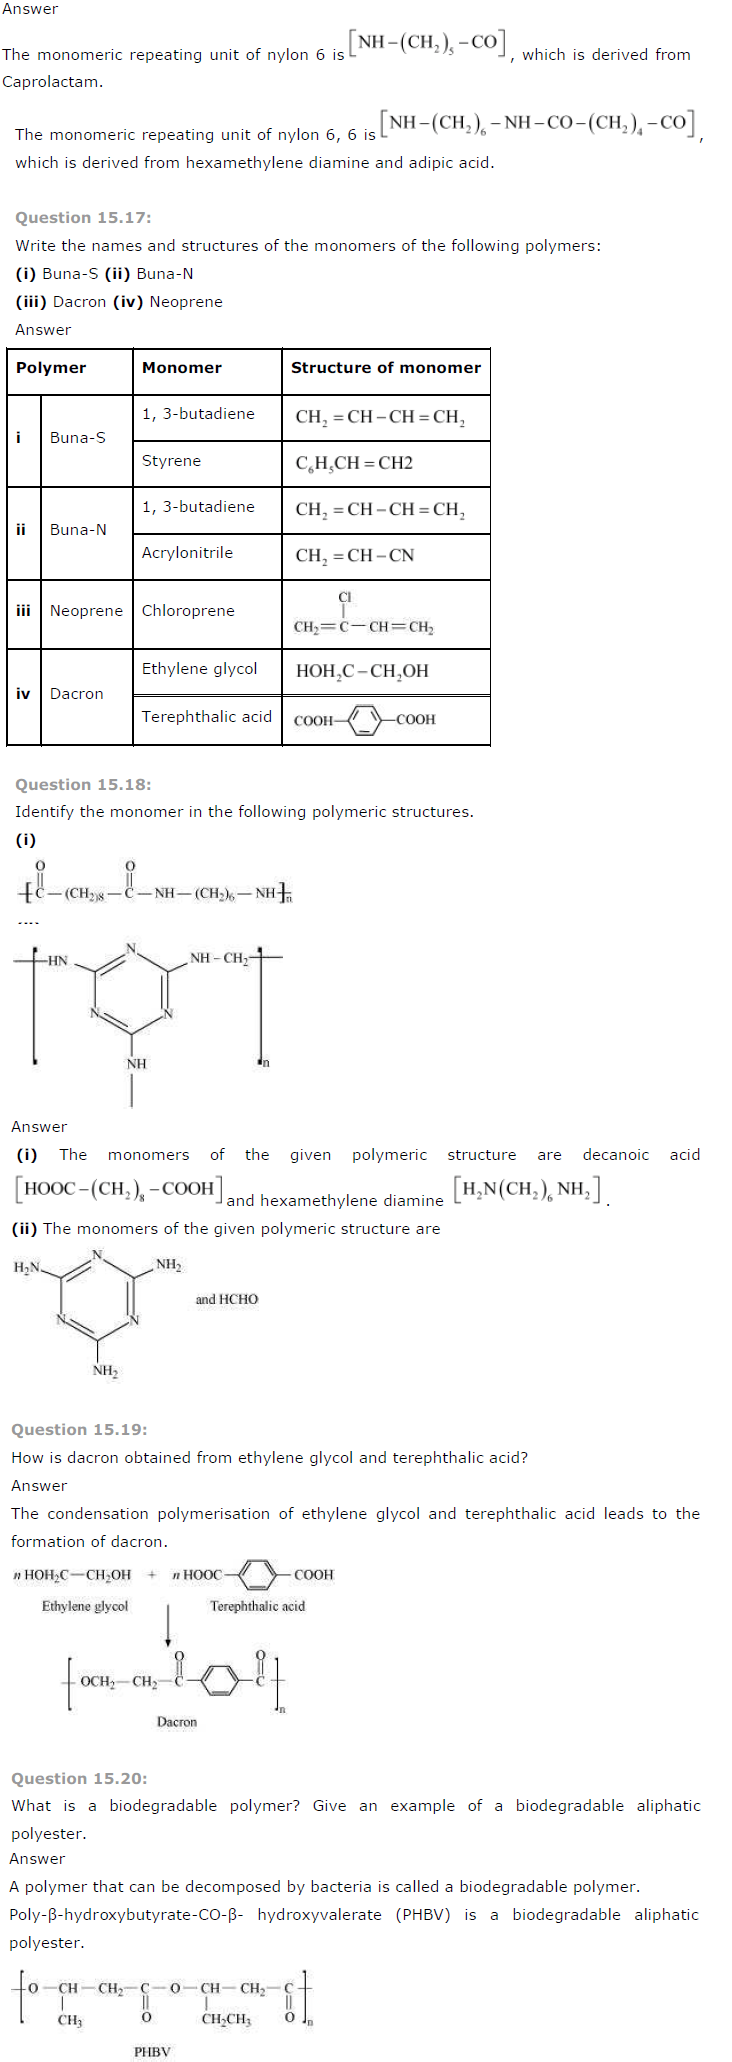 NCERT Solutions for Class 12th Chemistry Chapter 15 Polymers Image by AglaSem